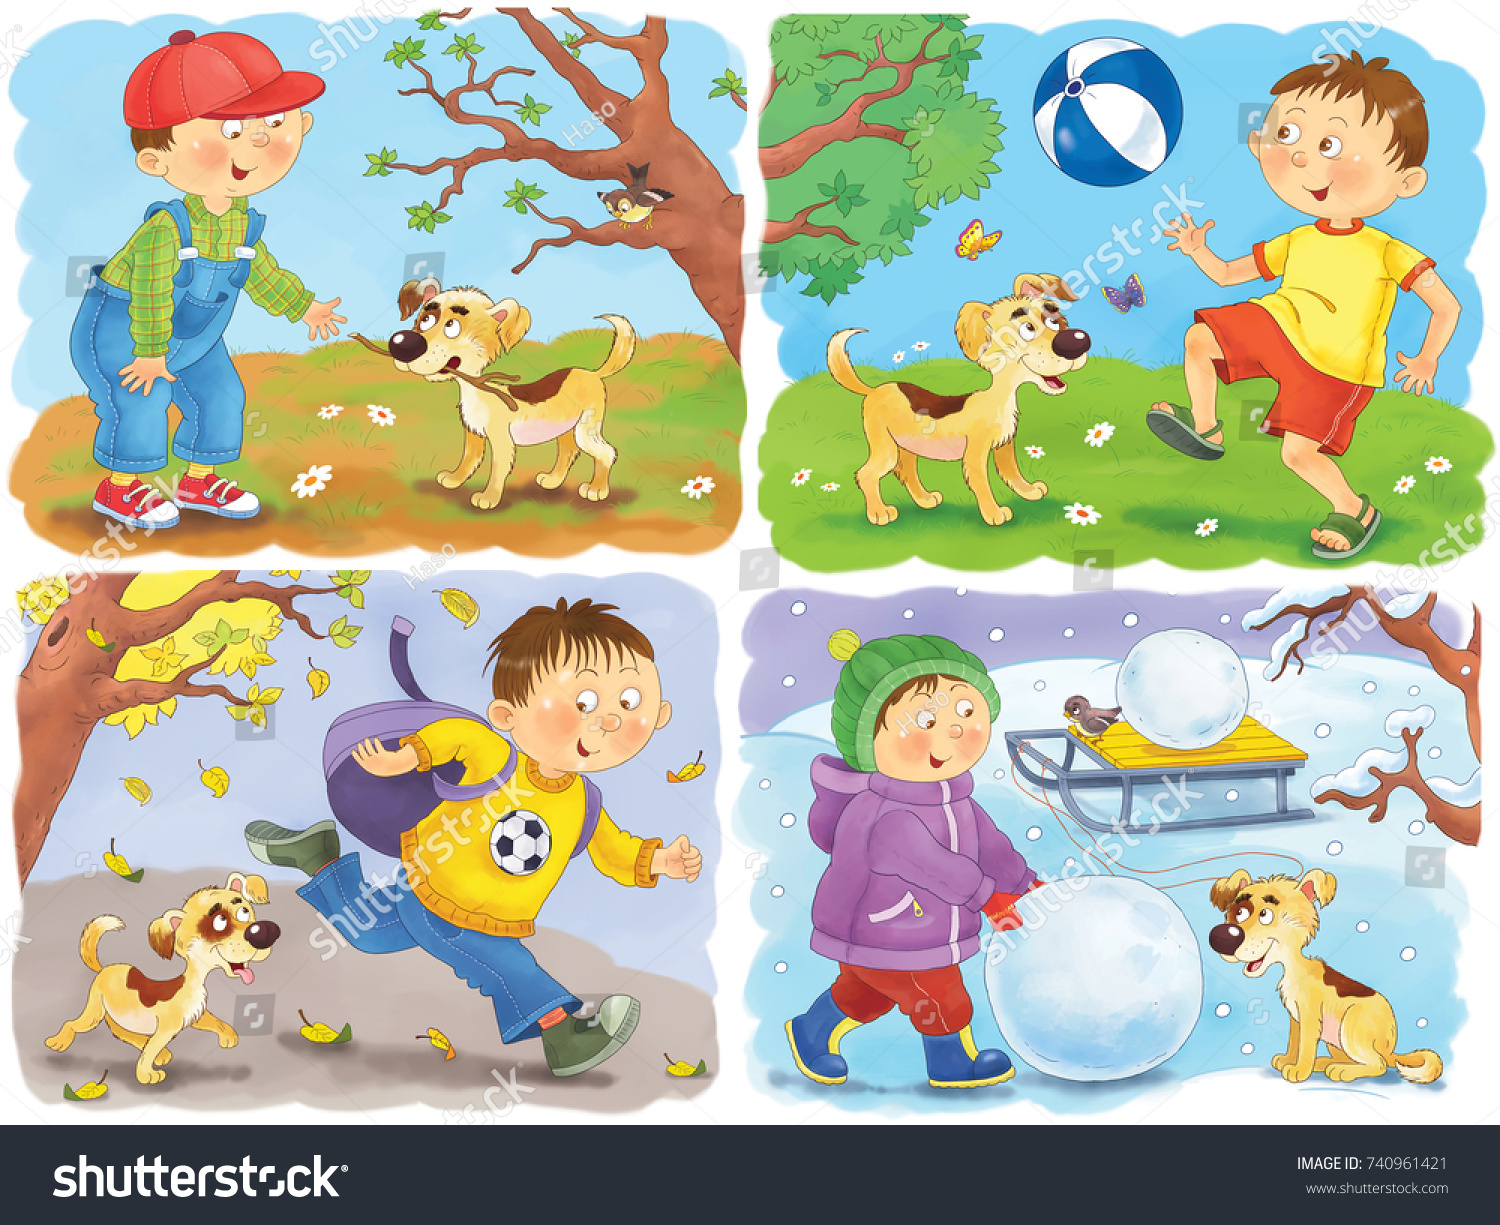 four seasons spring  summer  autumn and winter cartoon characters clipart images cartoon characters clipart free